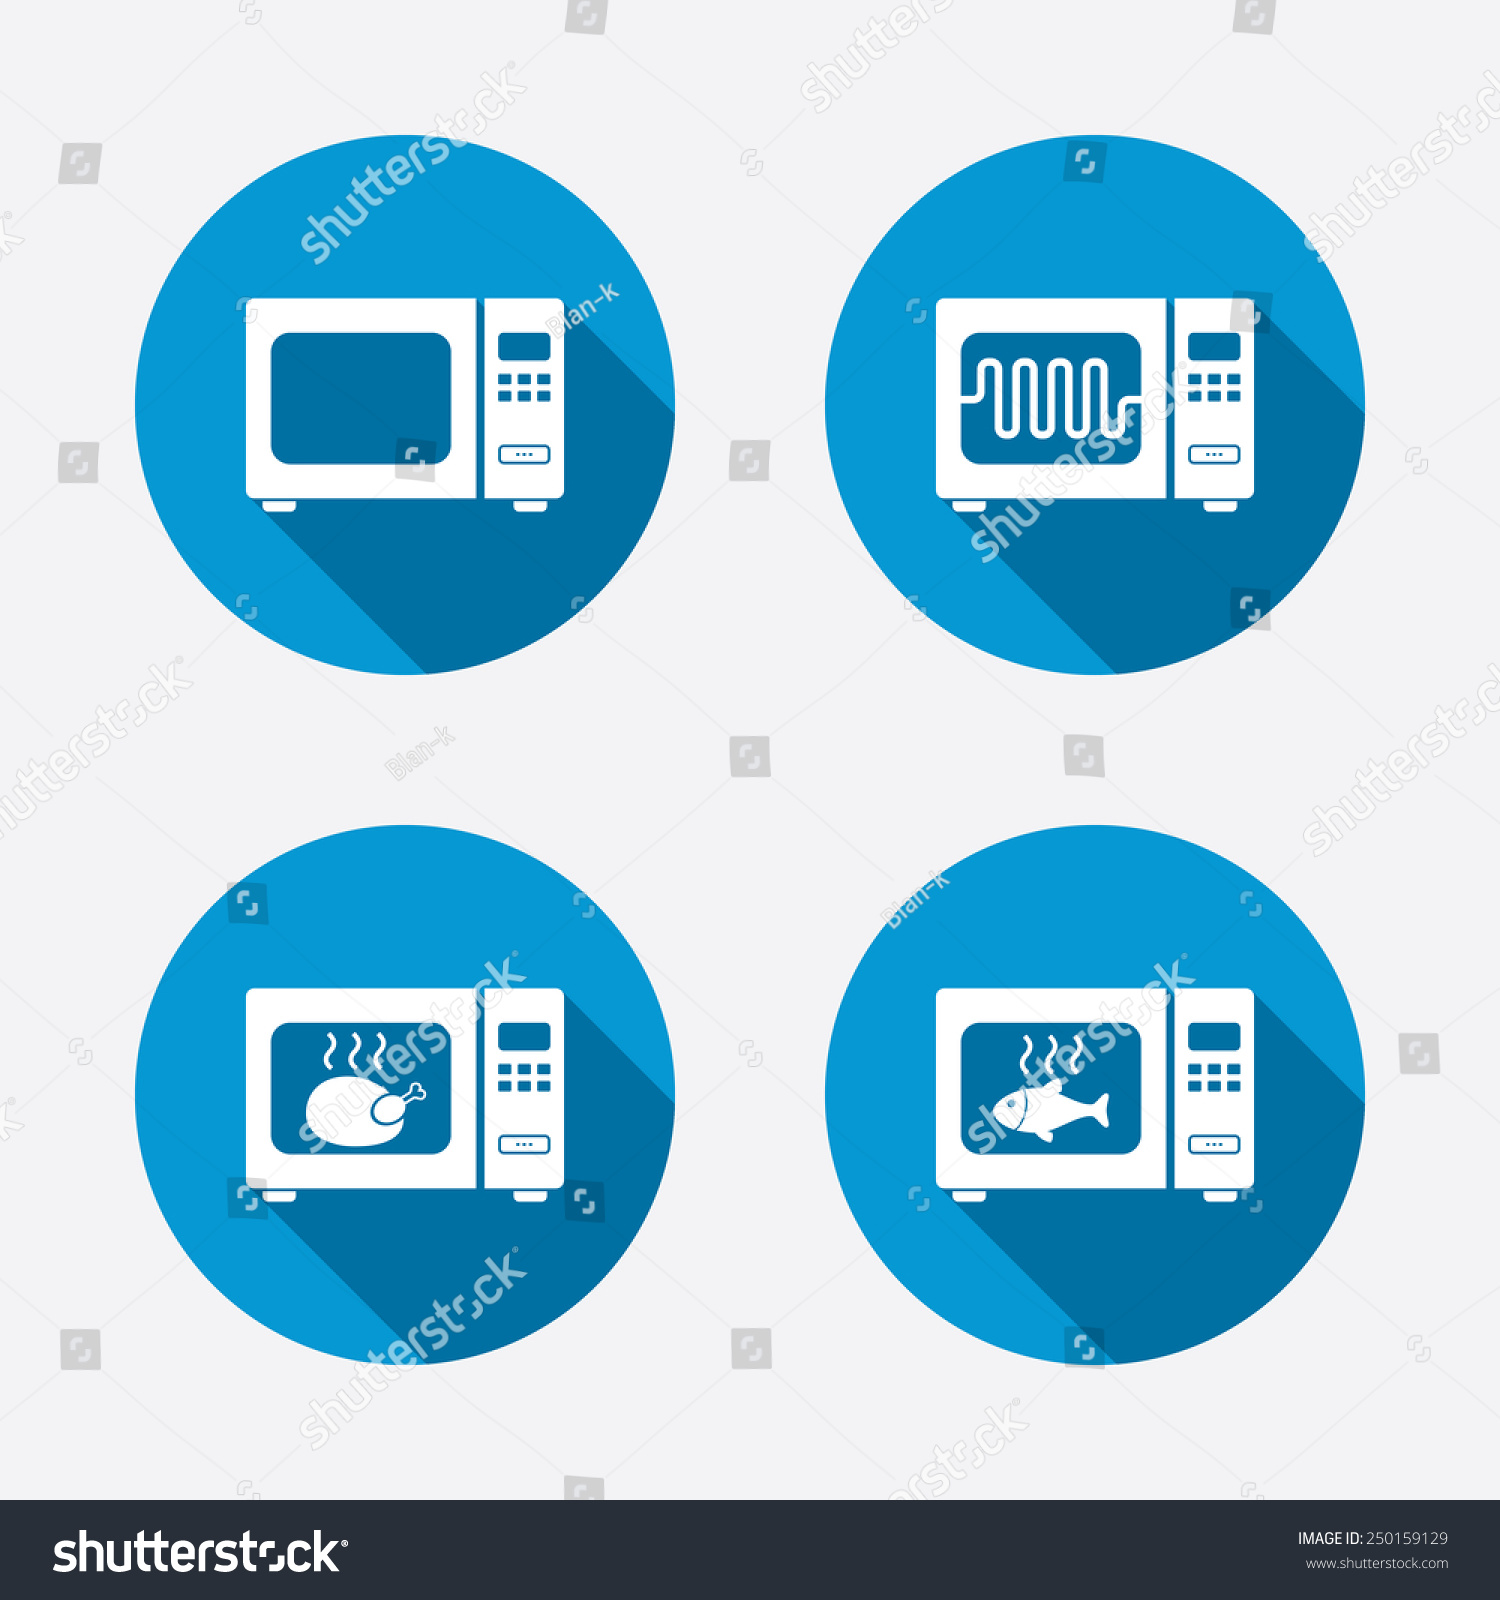 Microwave oven icons cook electric stove stock vector 250159129 microwave oven icons cook in electric stove symbols grill chicken and fish signs buycottarizona Image collections